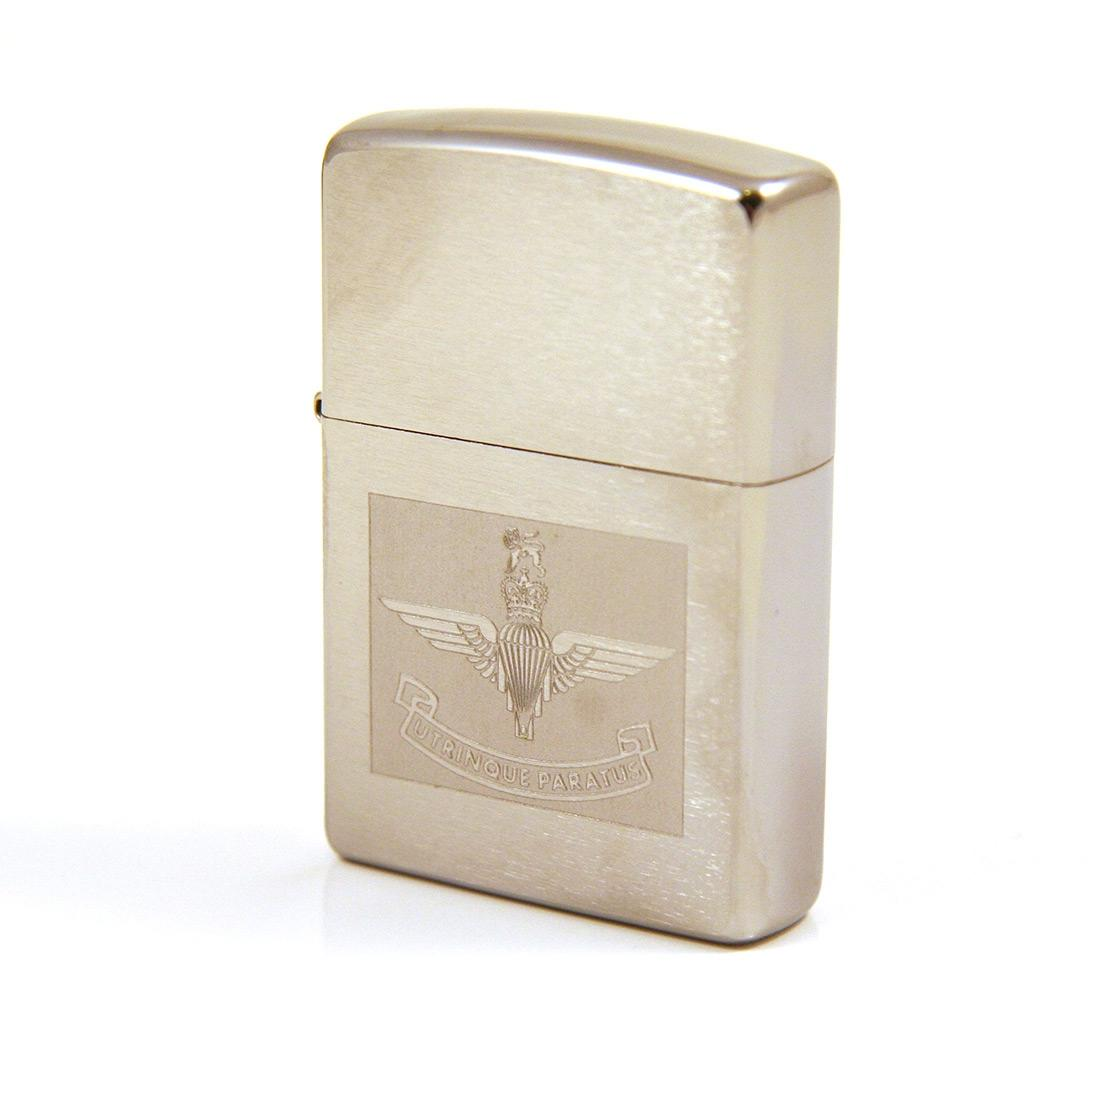 Zippo Lighter with Engraved Parachute Regiment Emblem